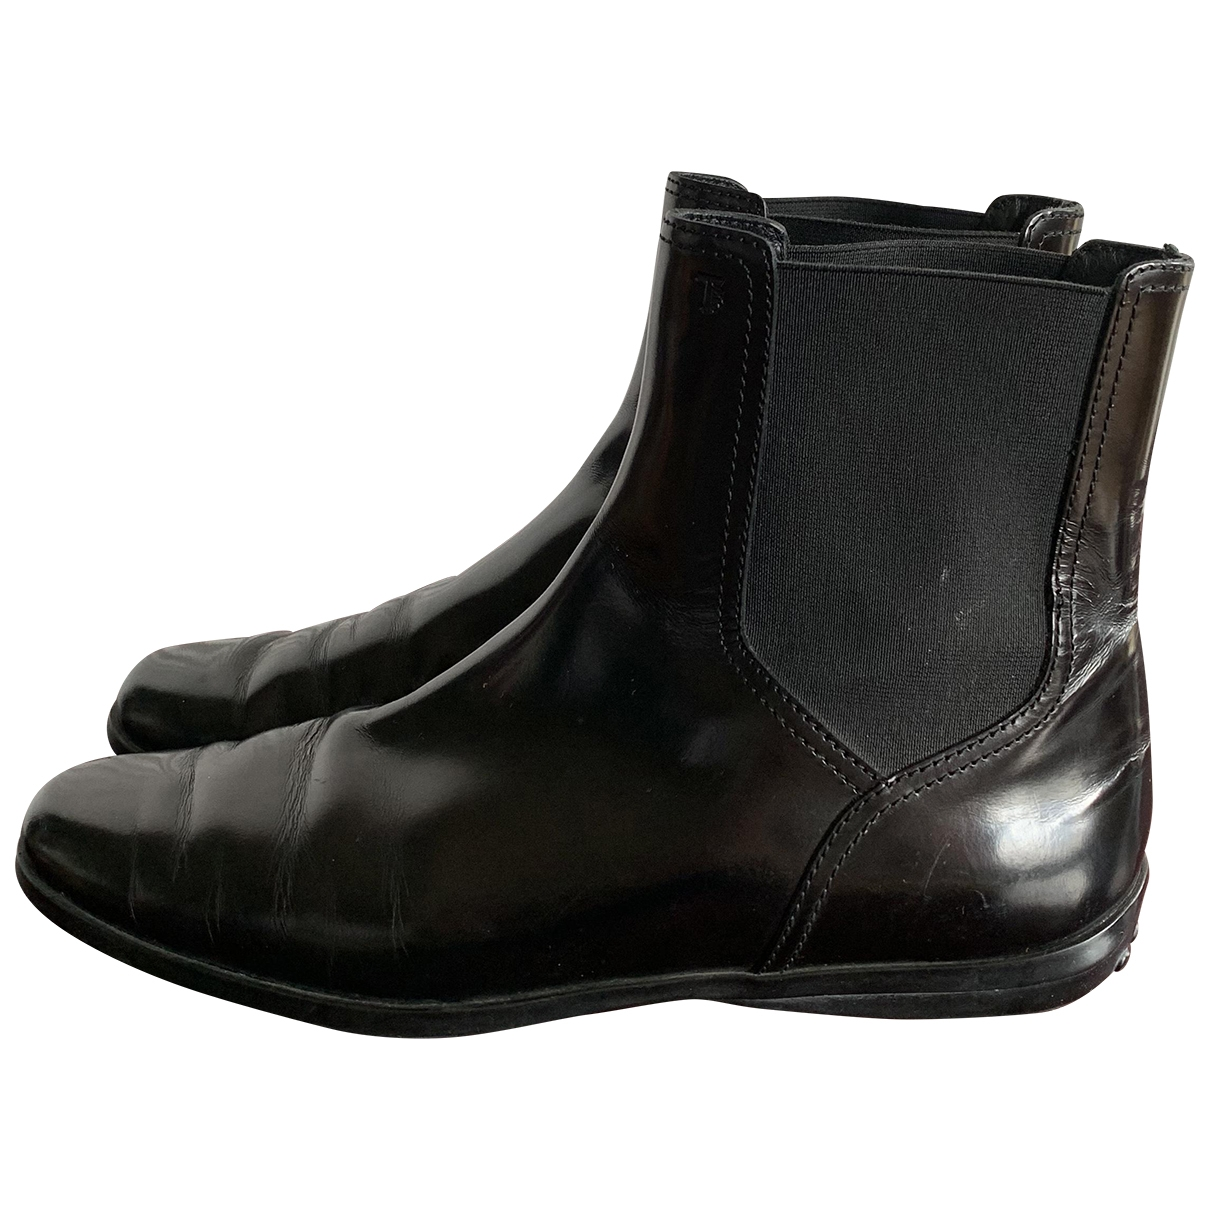 Tod's \N Black Patent leather Ankle boots for Women 37 EU